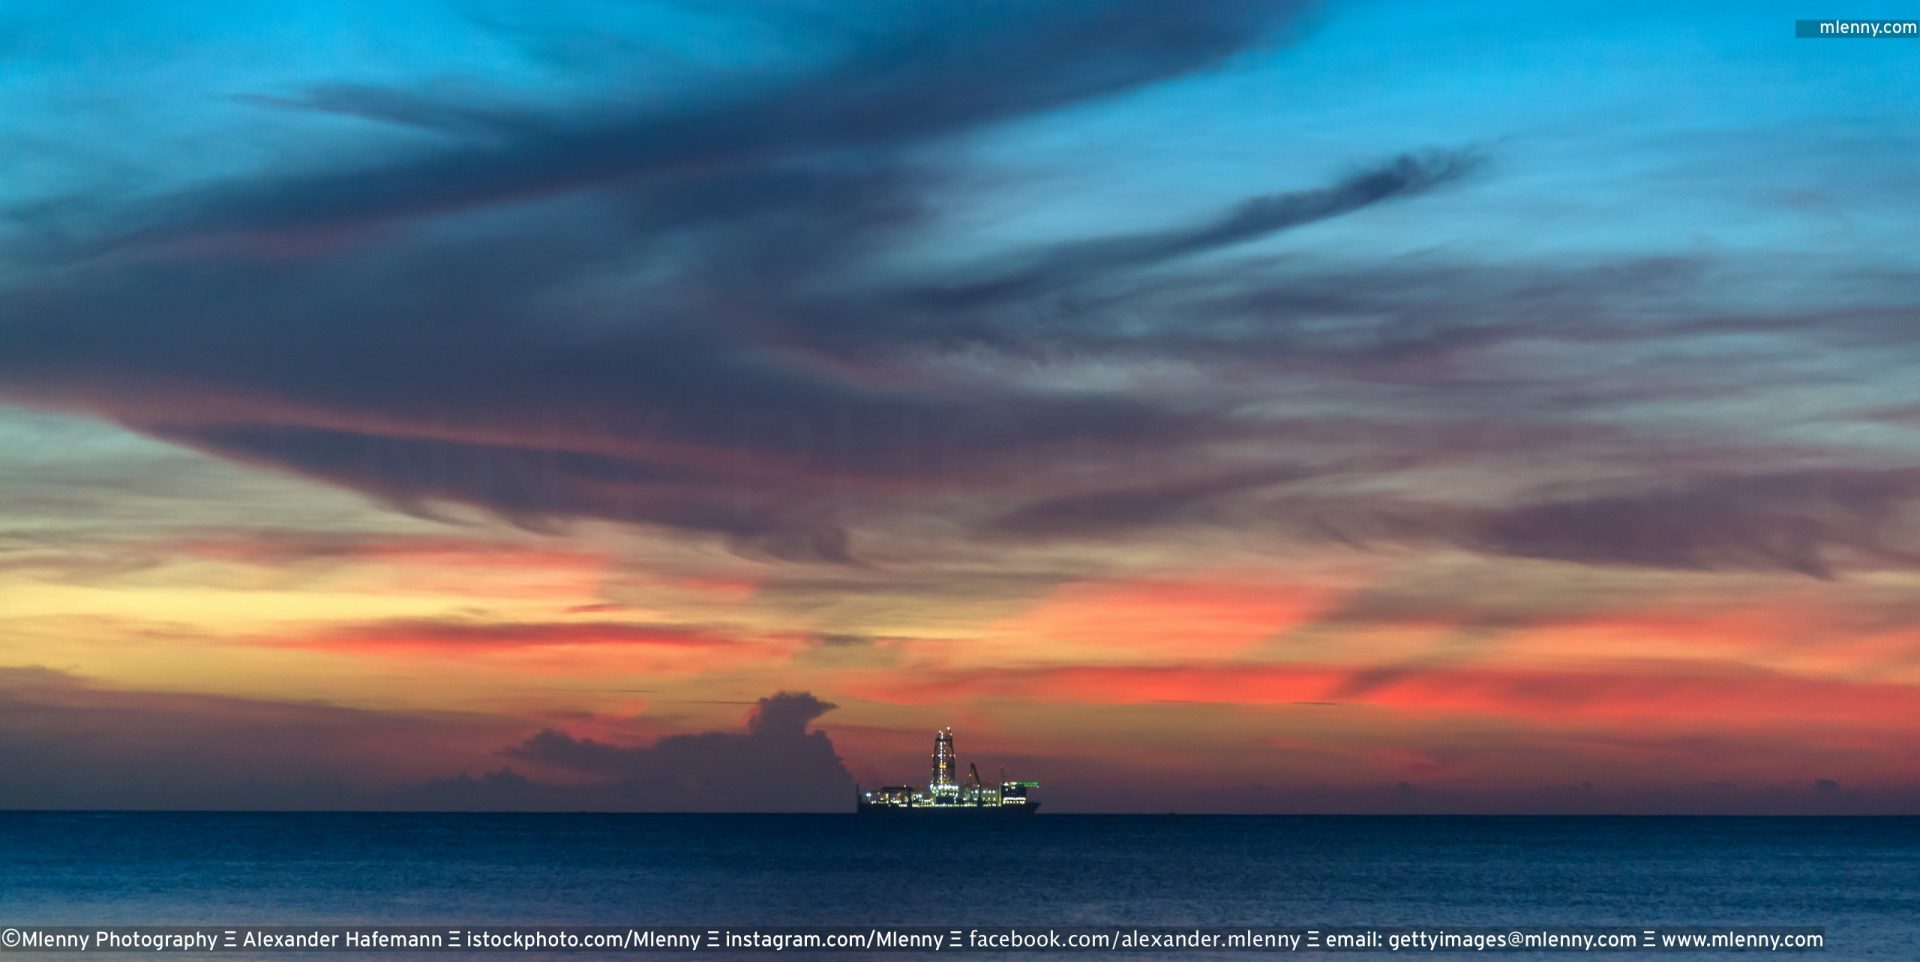 Drillship under colorful twilight skyscape